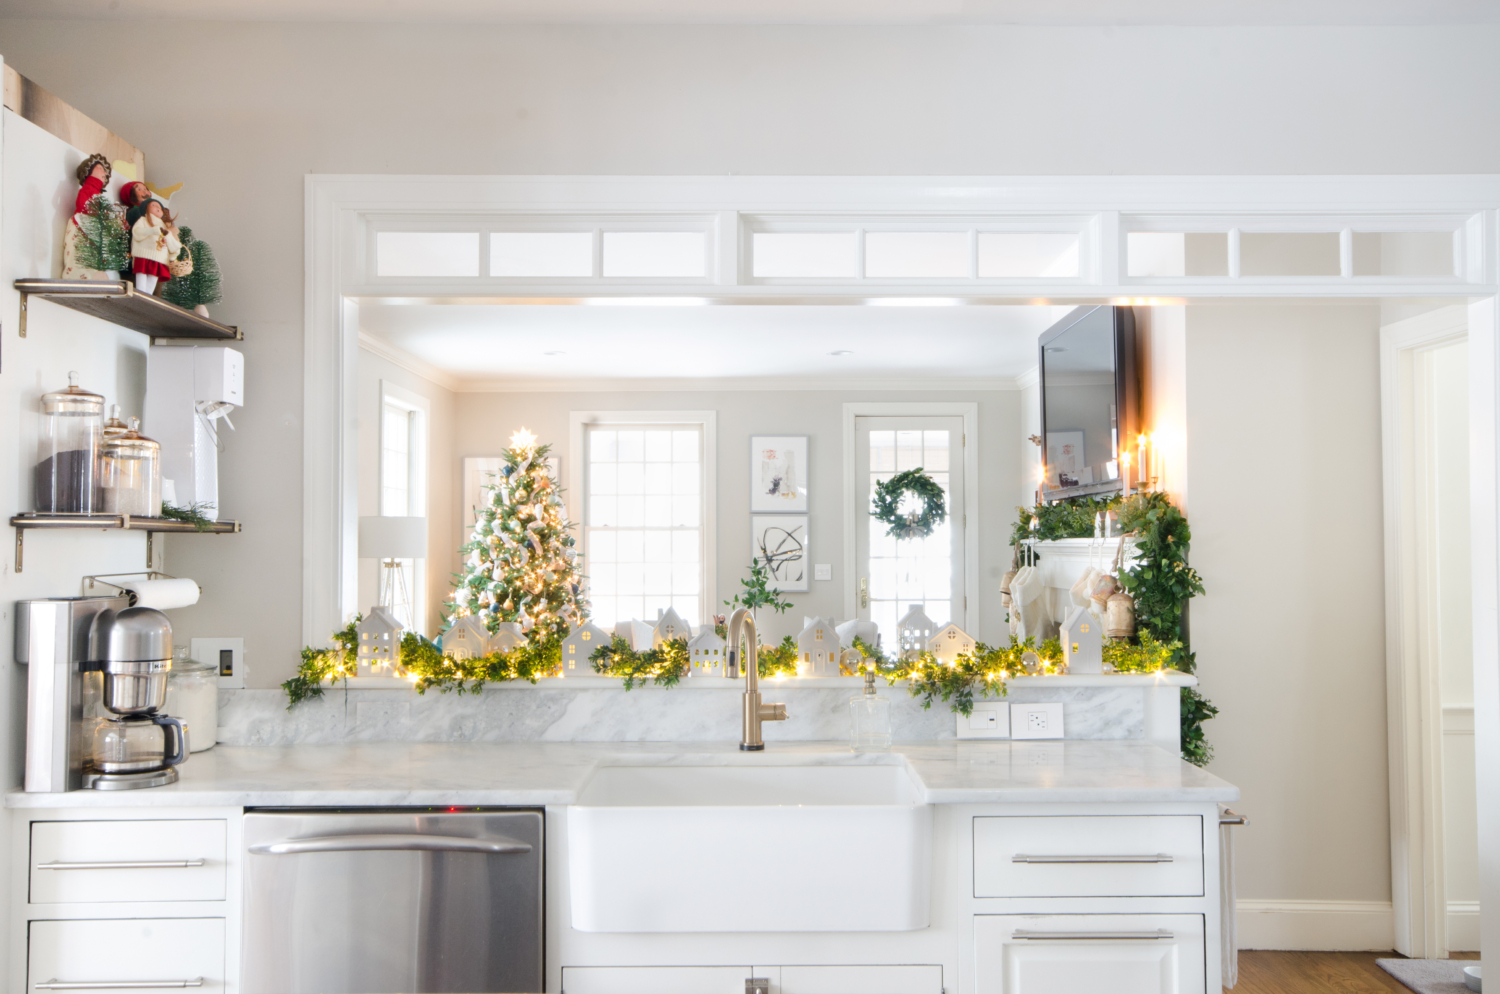 Christmas kitchen with white ceramic houses, boxwood garland, and twinkle lights.